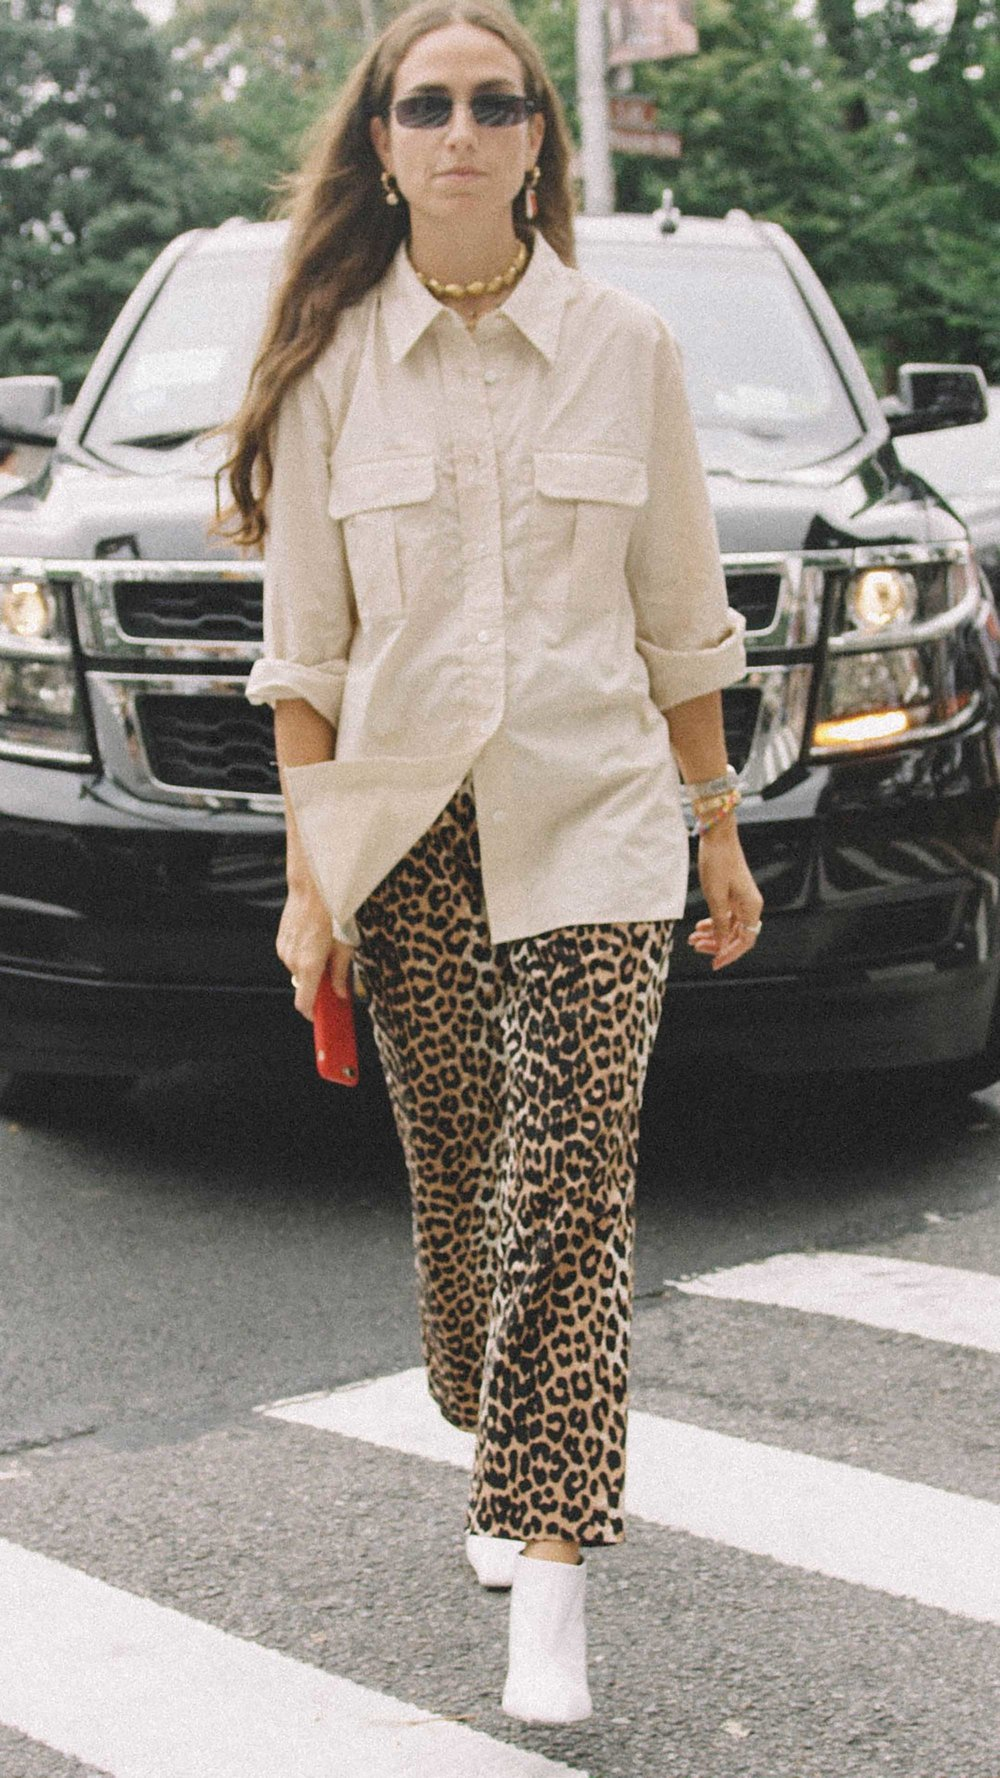 10 Easy Ways to Pull Off Animal Print, leopard pants white boots, Erika Boldrin Street Style.jpg